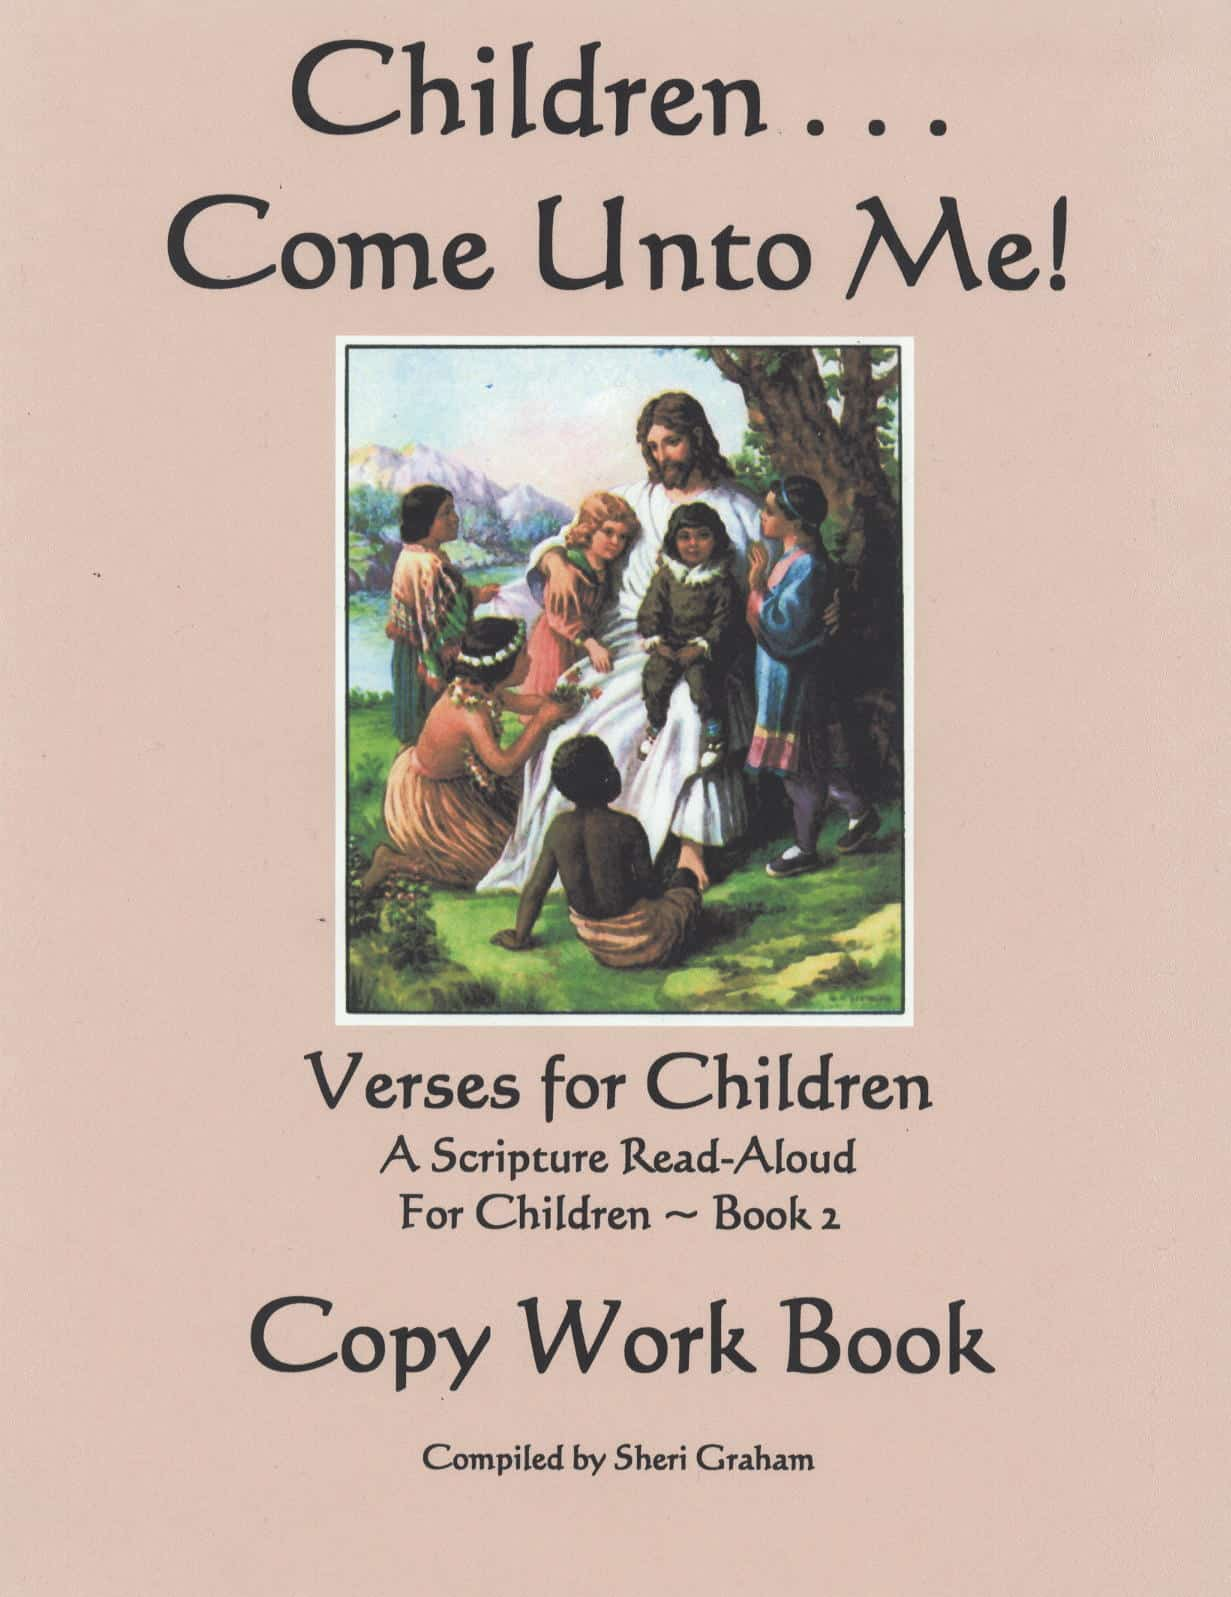 Children Come Unto Me - Copywork Book